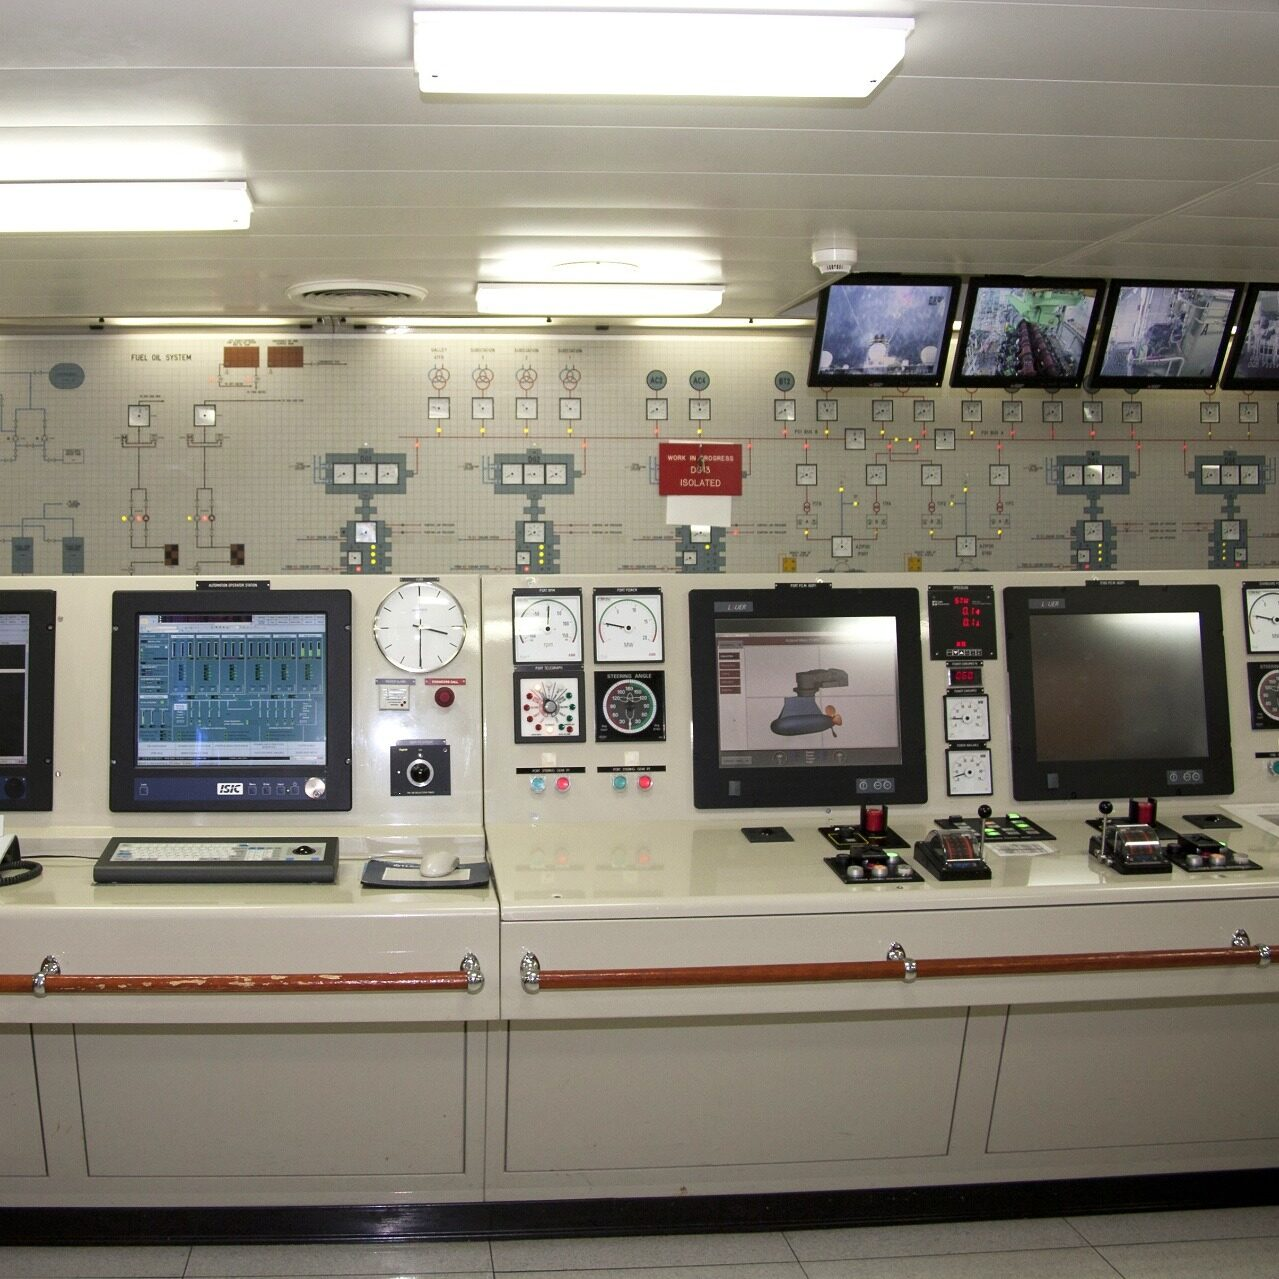 Monitors and displays used for controlling the engine operations of a cruiseliner